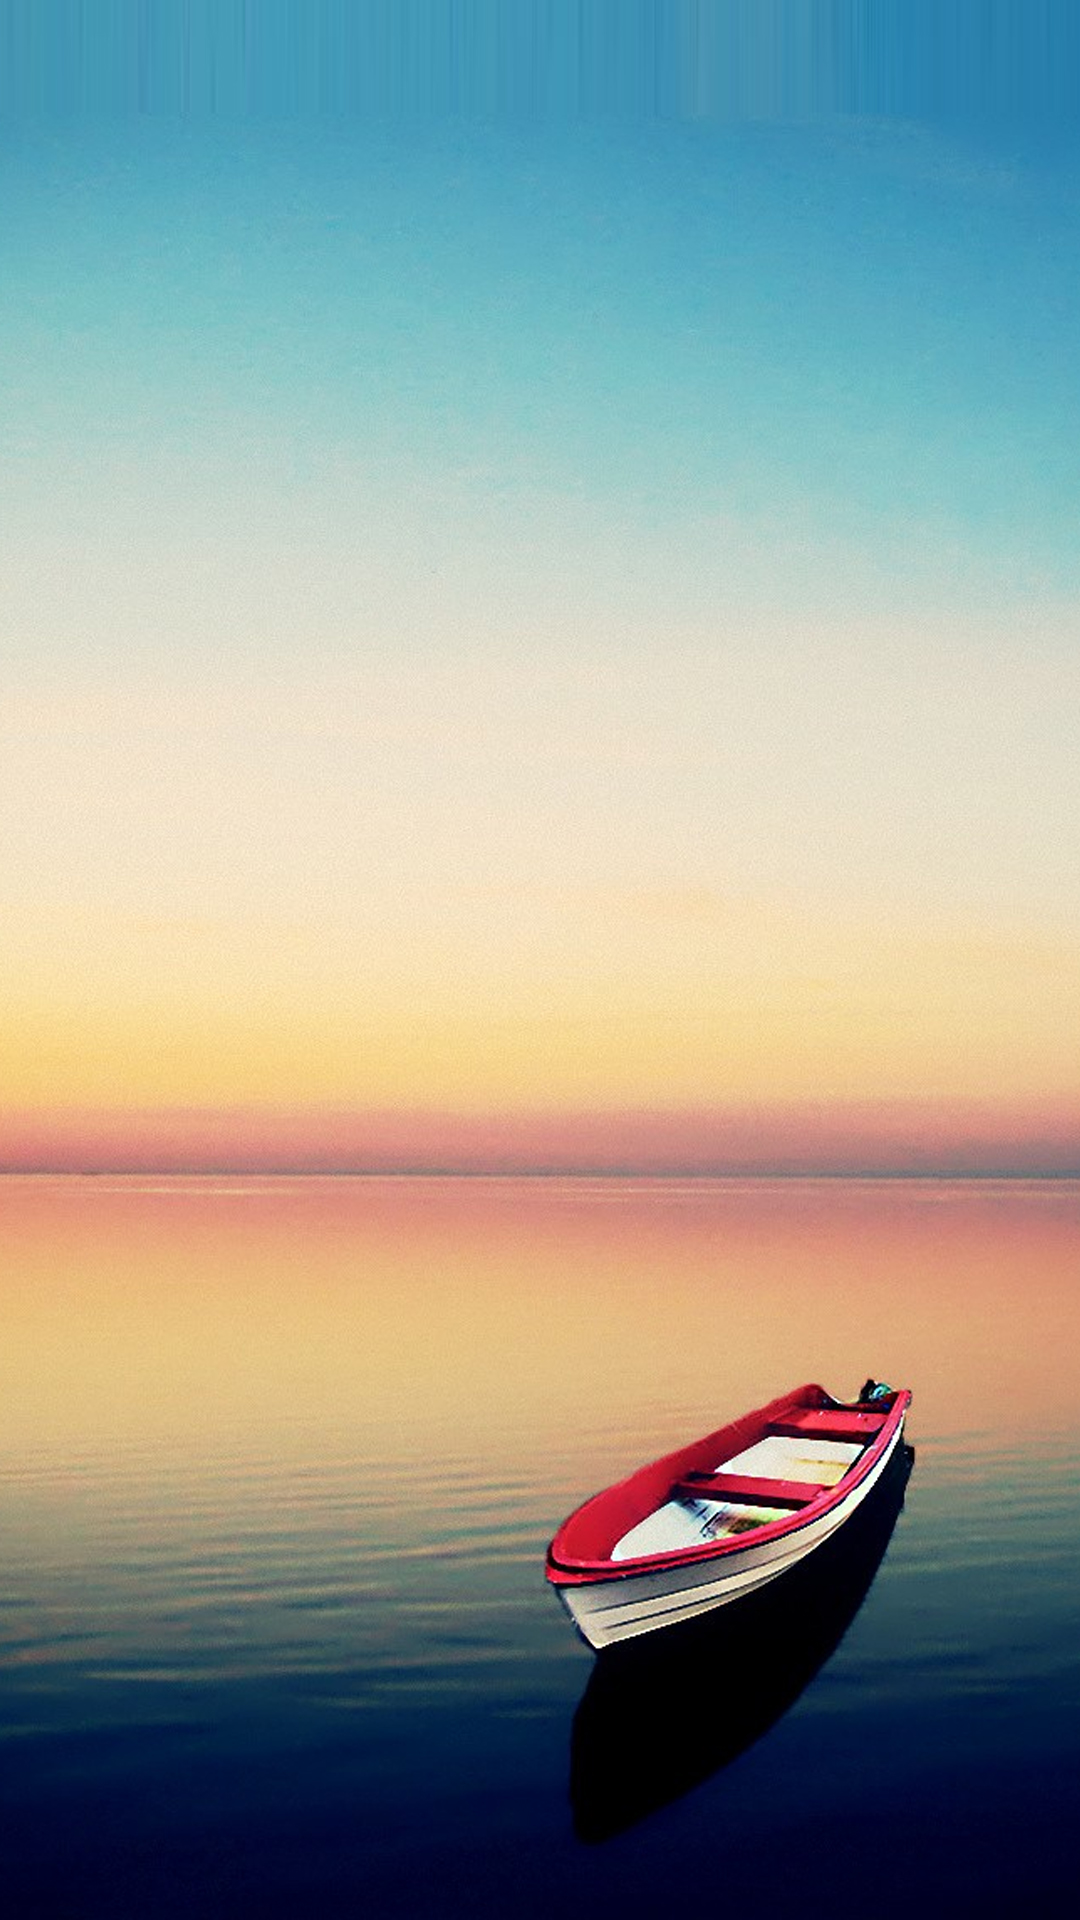 boat at sunset smartphone hd wallpapers getphotos